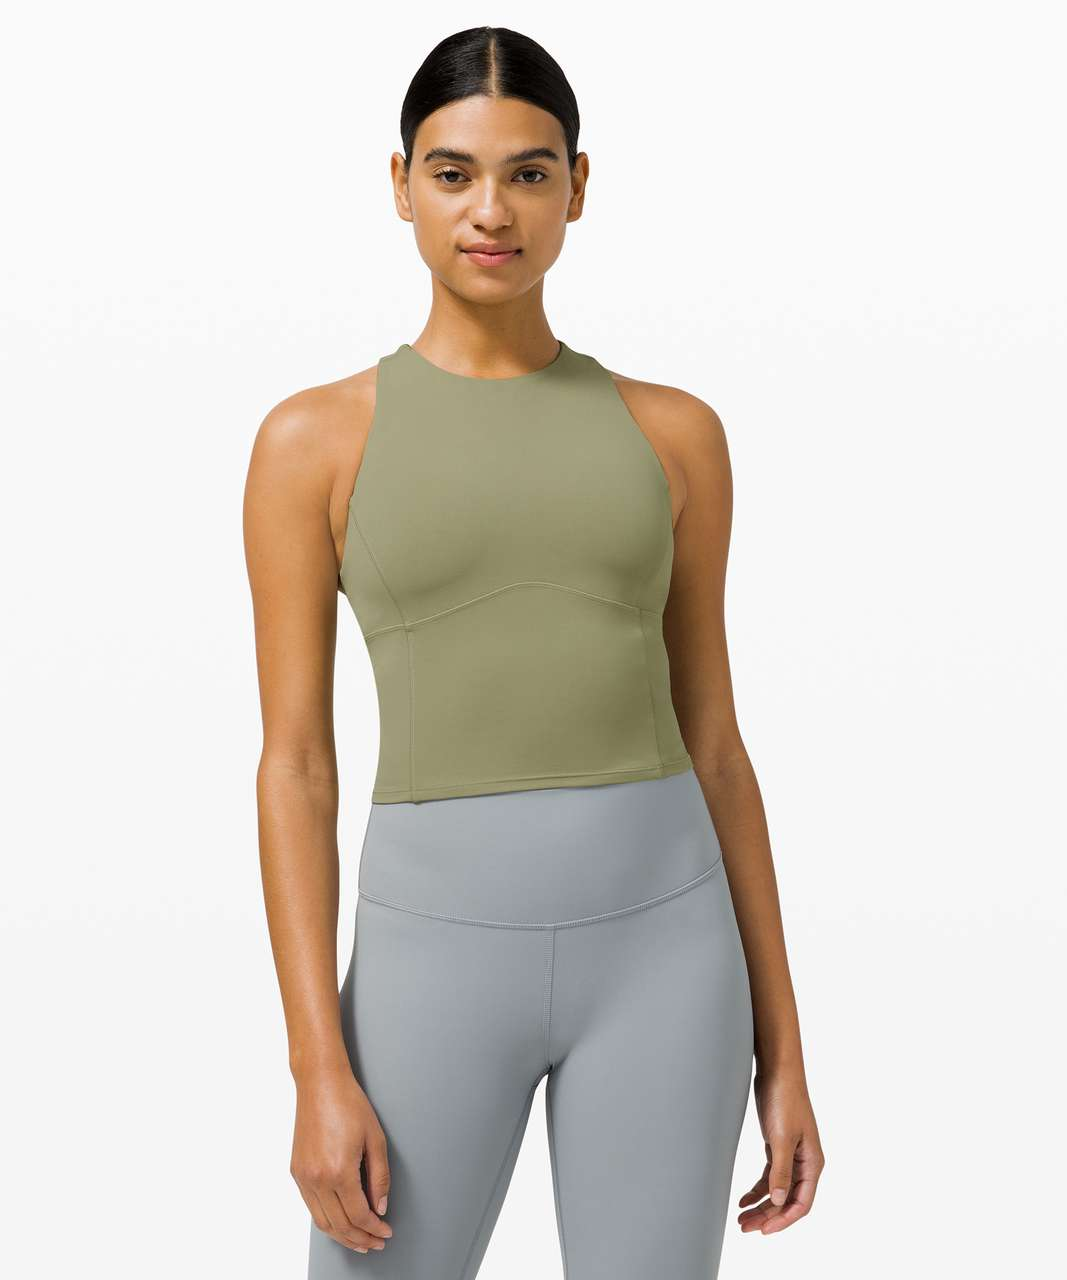 Lululemon Key to Balance Tank - Rosemary Green